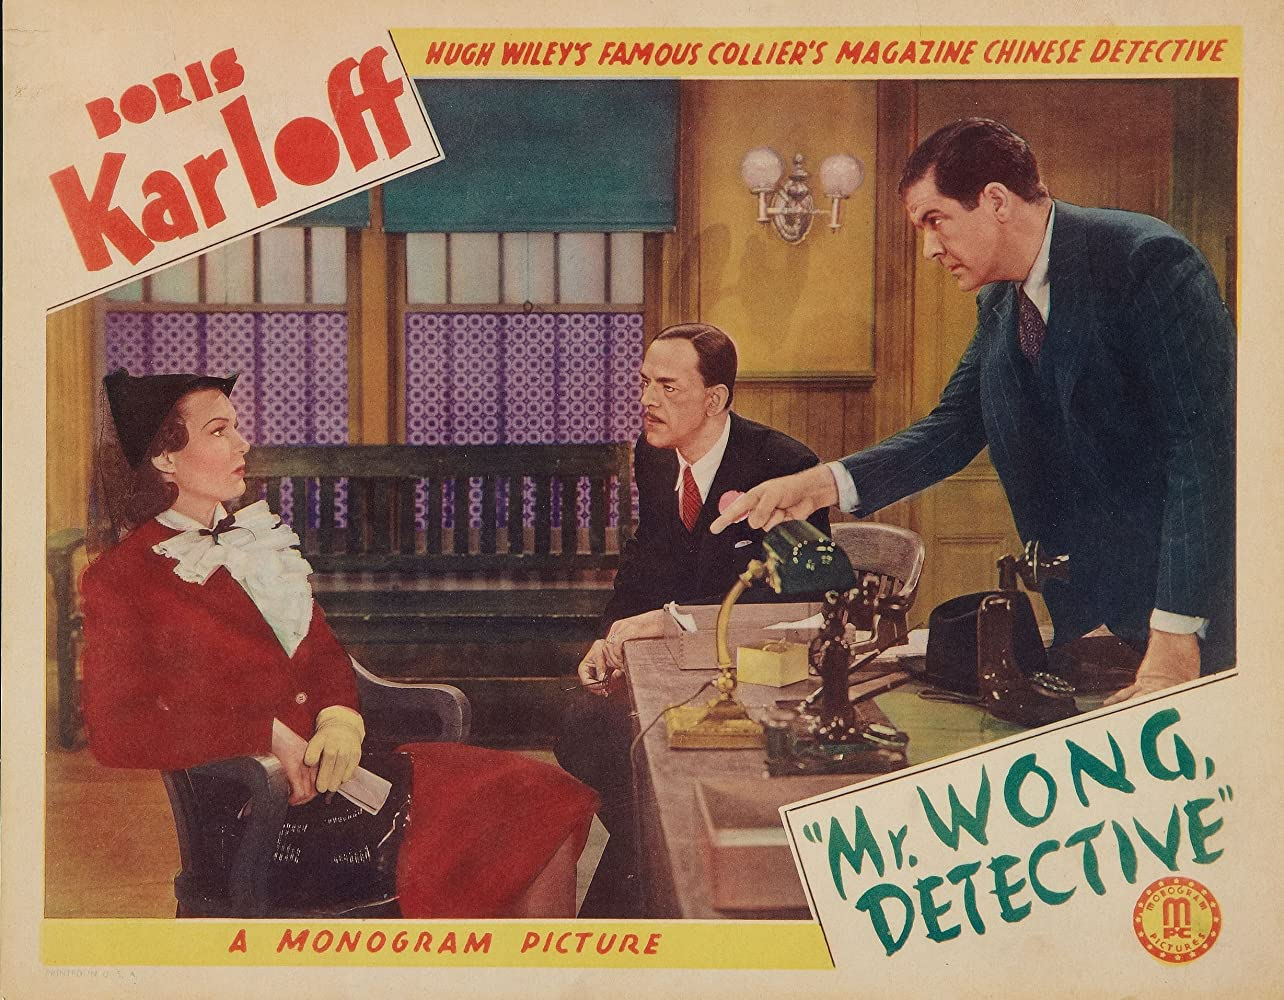 Boris Karloff, Maxine Jennings, and Grant Withers in Mr. Wong, Detective (1938)